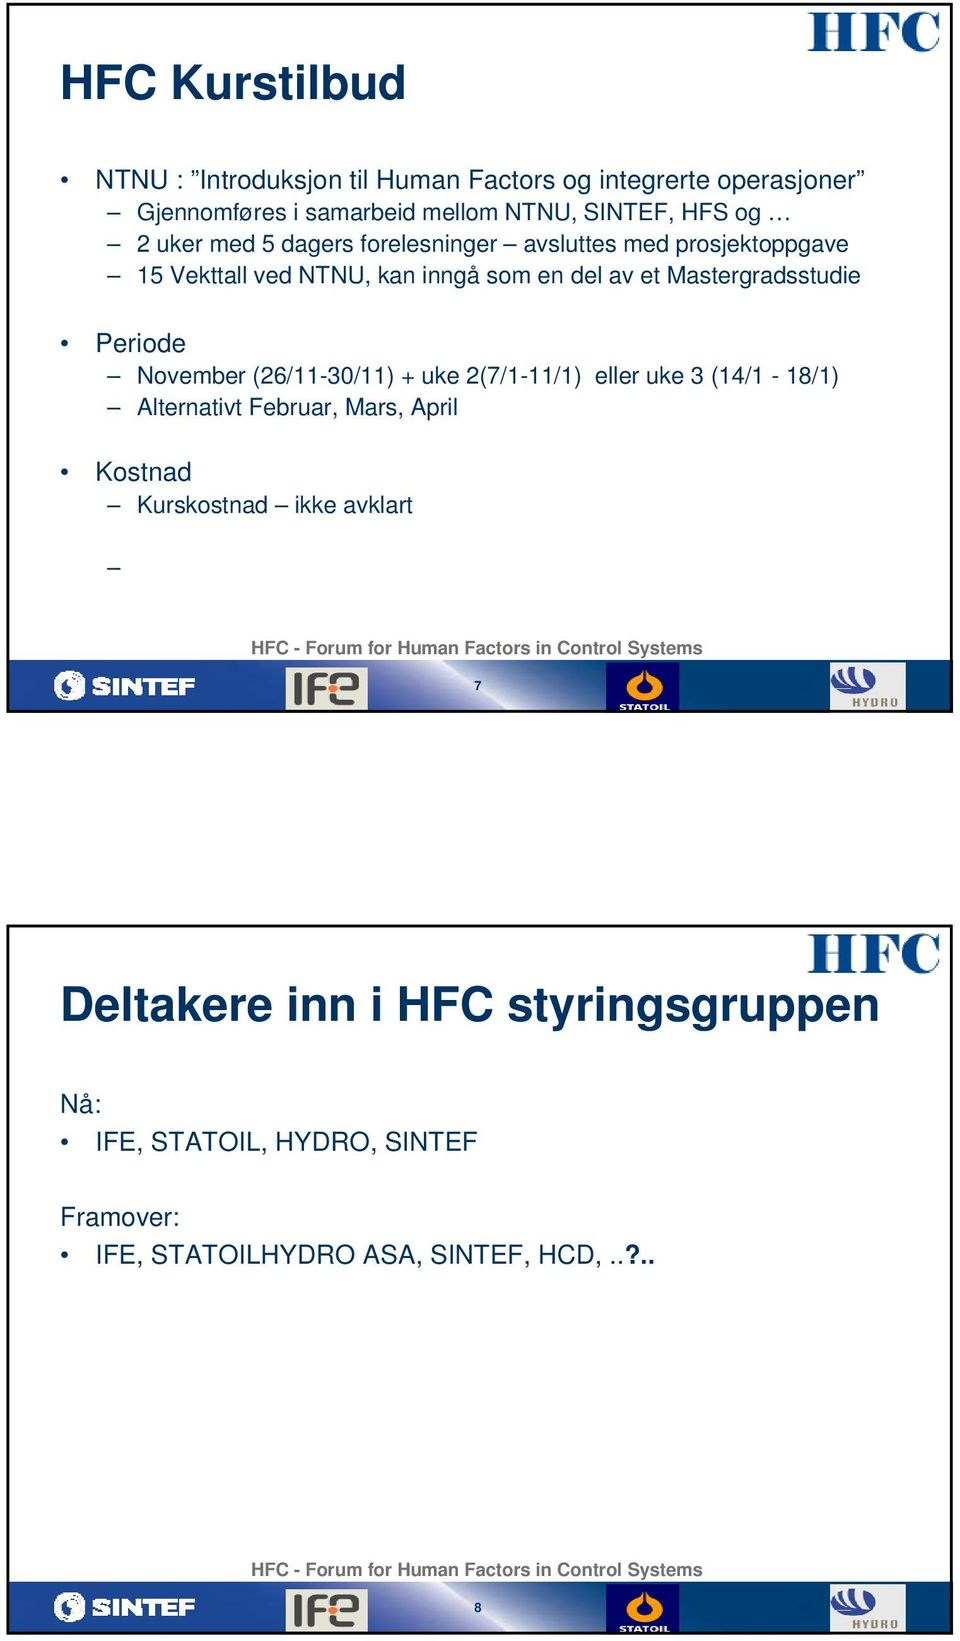 2(7/1-11/1) eller uke 3 (14/1-18/1) Alternativt Februar, Mars, April Kostnad Kurskostnad ikke avklart HFC - Forum for Human Factors in Control Systems 7